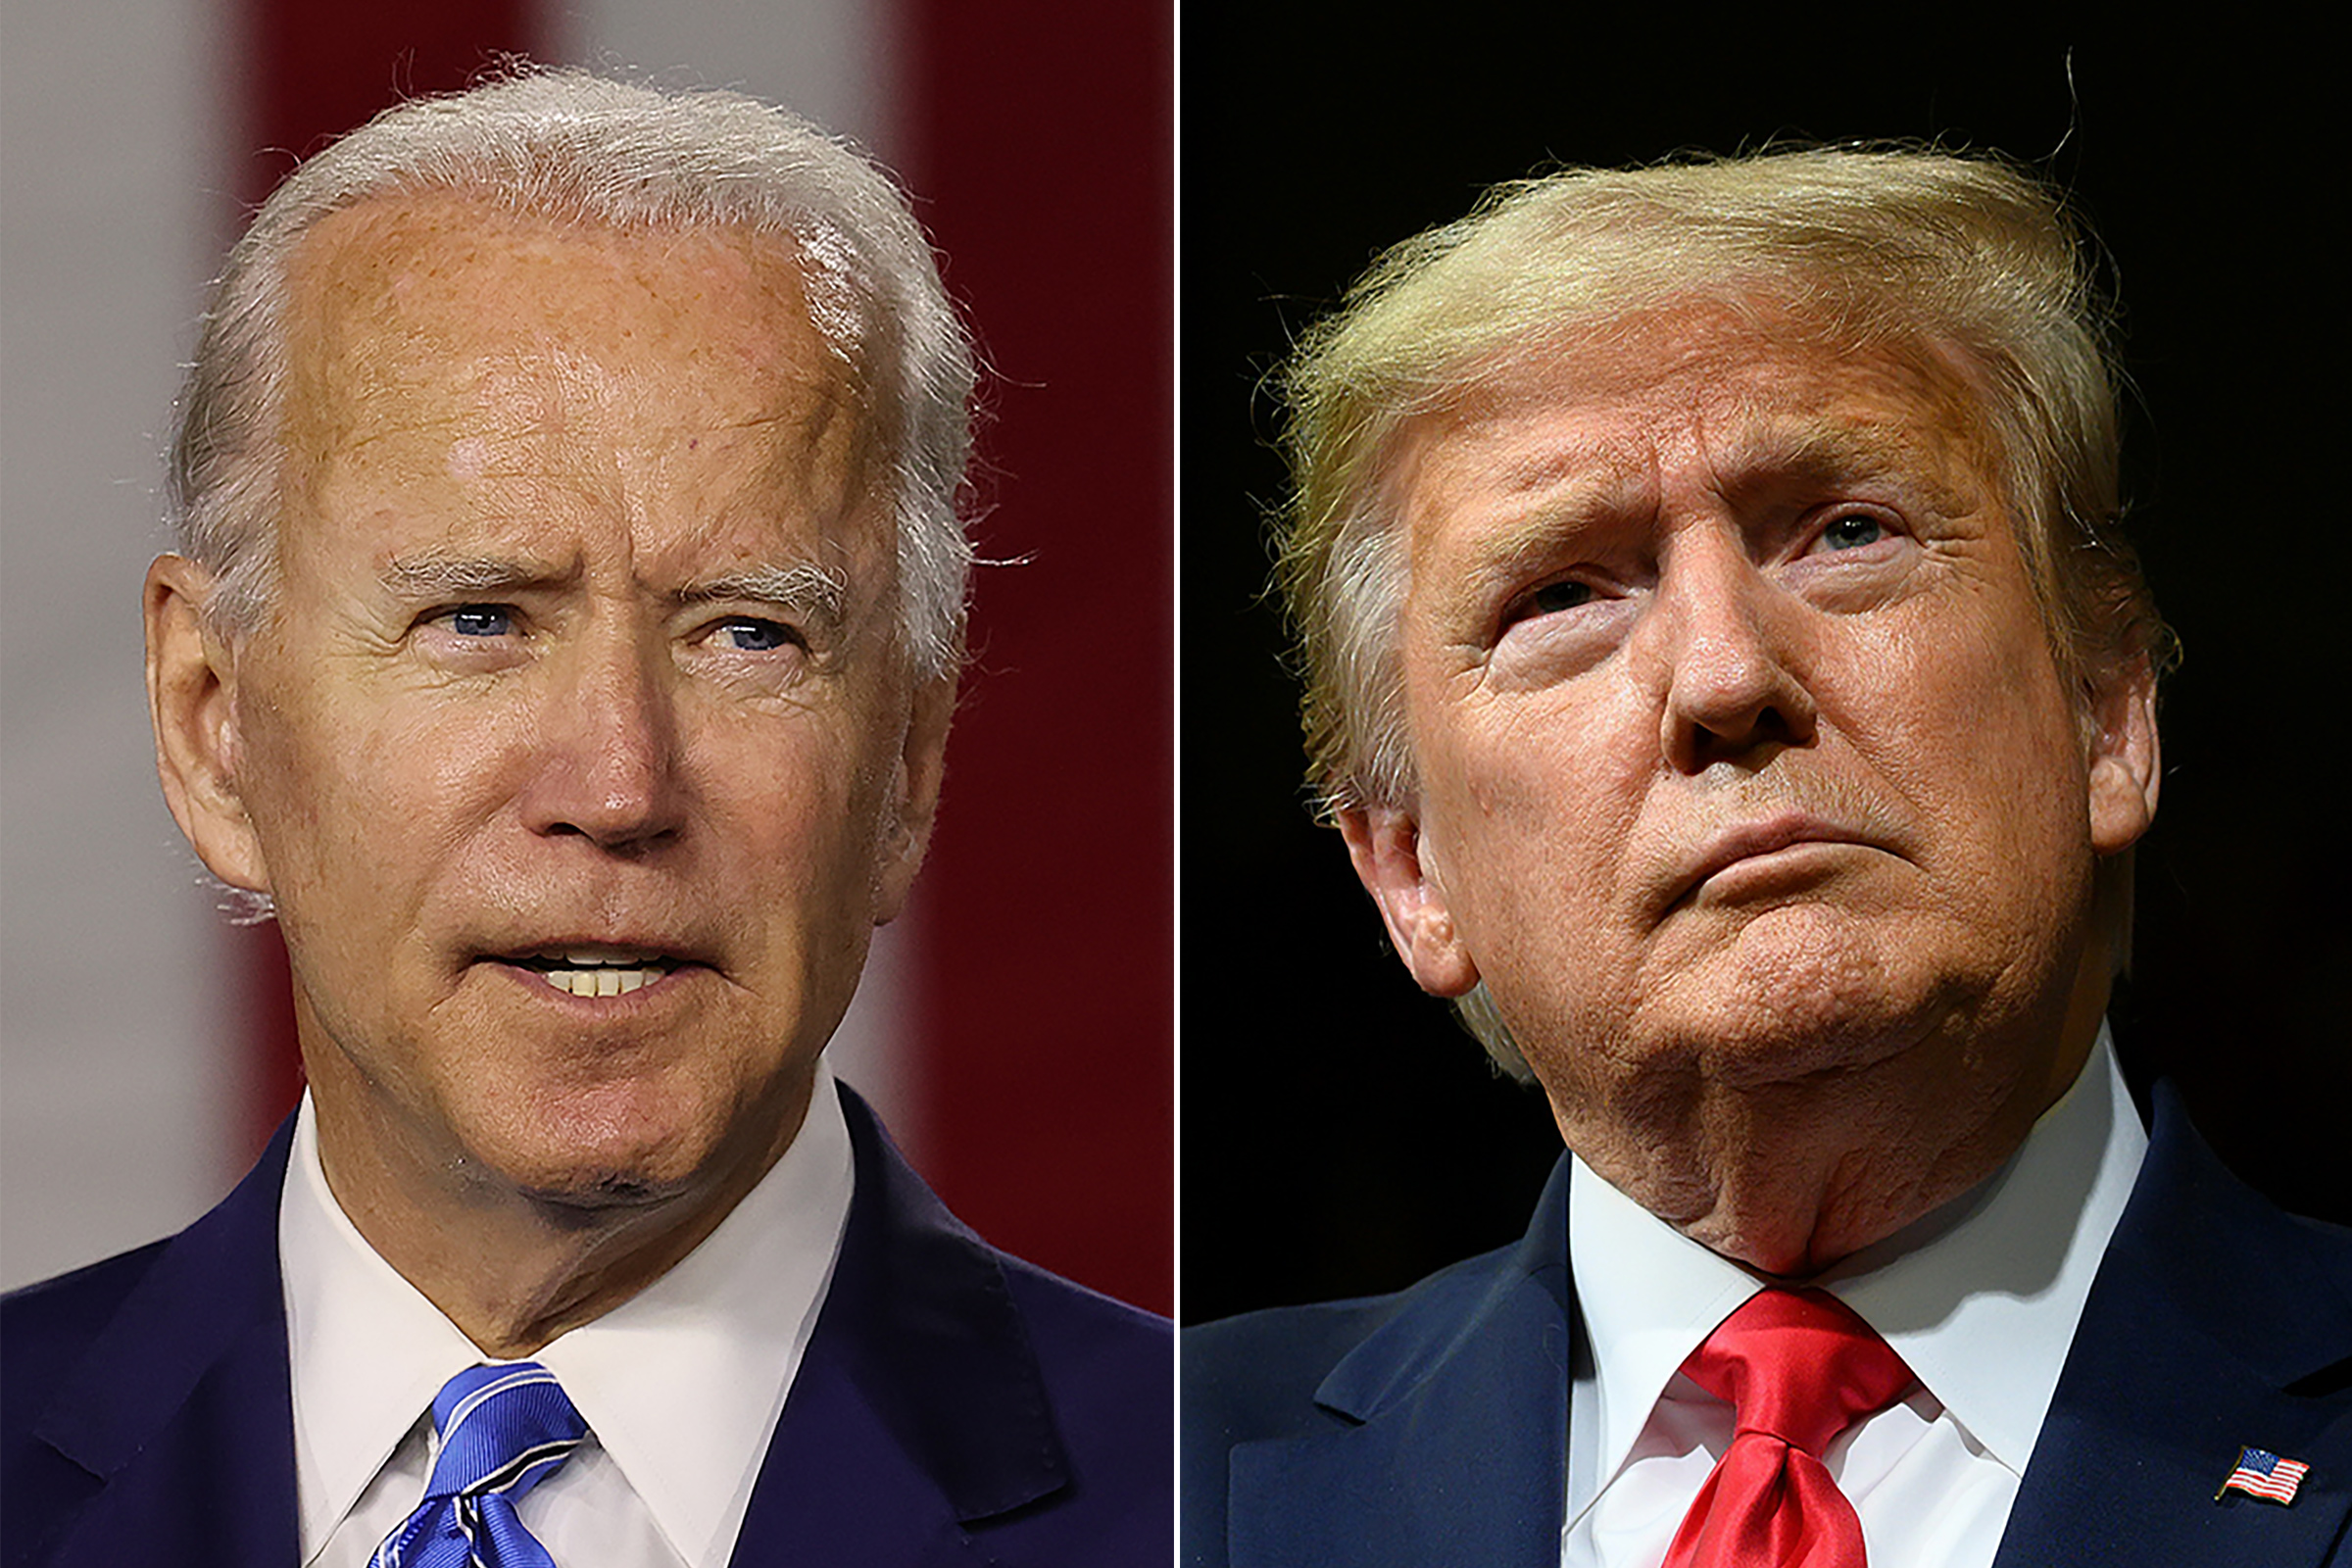 Vice President Joe Biden, left, speaks in Wilmington, Del., on July 14, 2020, and President Donald Trump speaks in Phoenix, Arizona, on February 19, 2020.